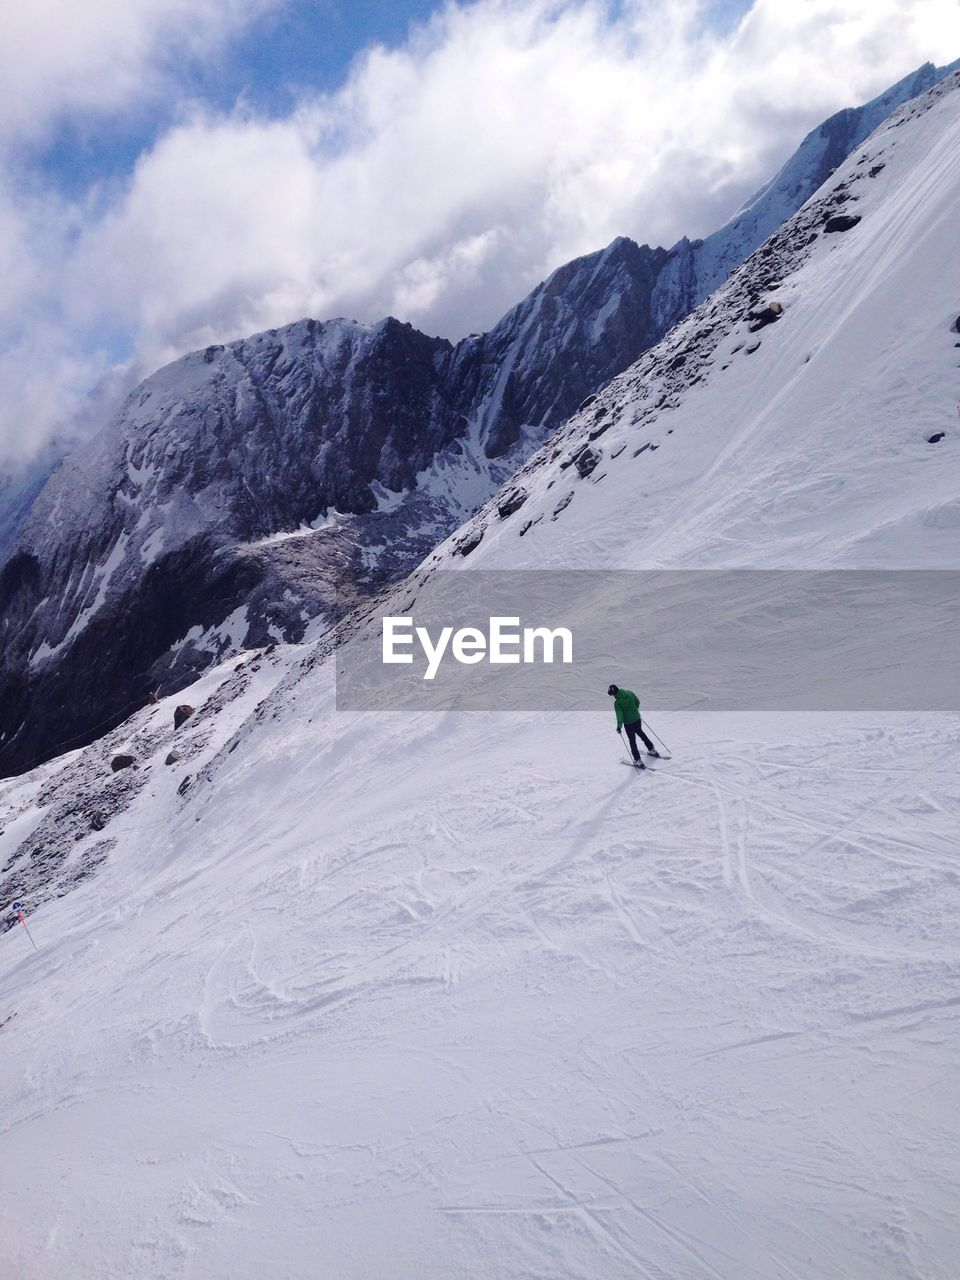 High Angle View Of Man Skiing On Snowcapped Mountain